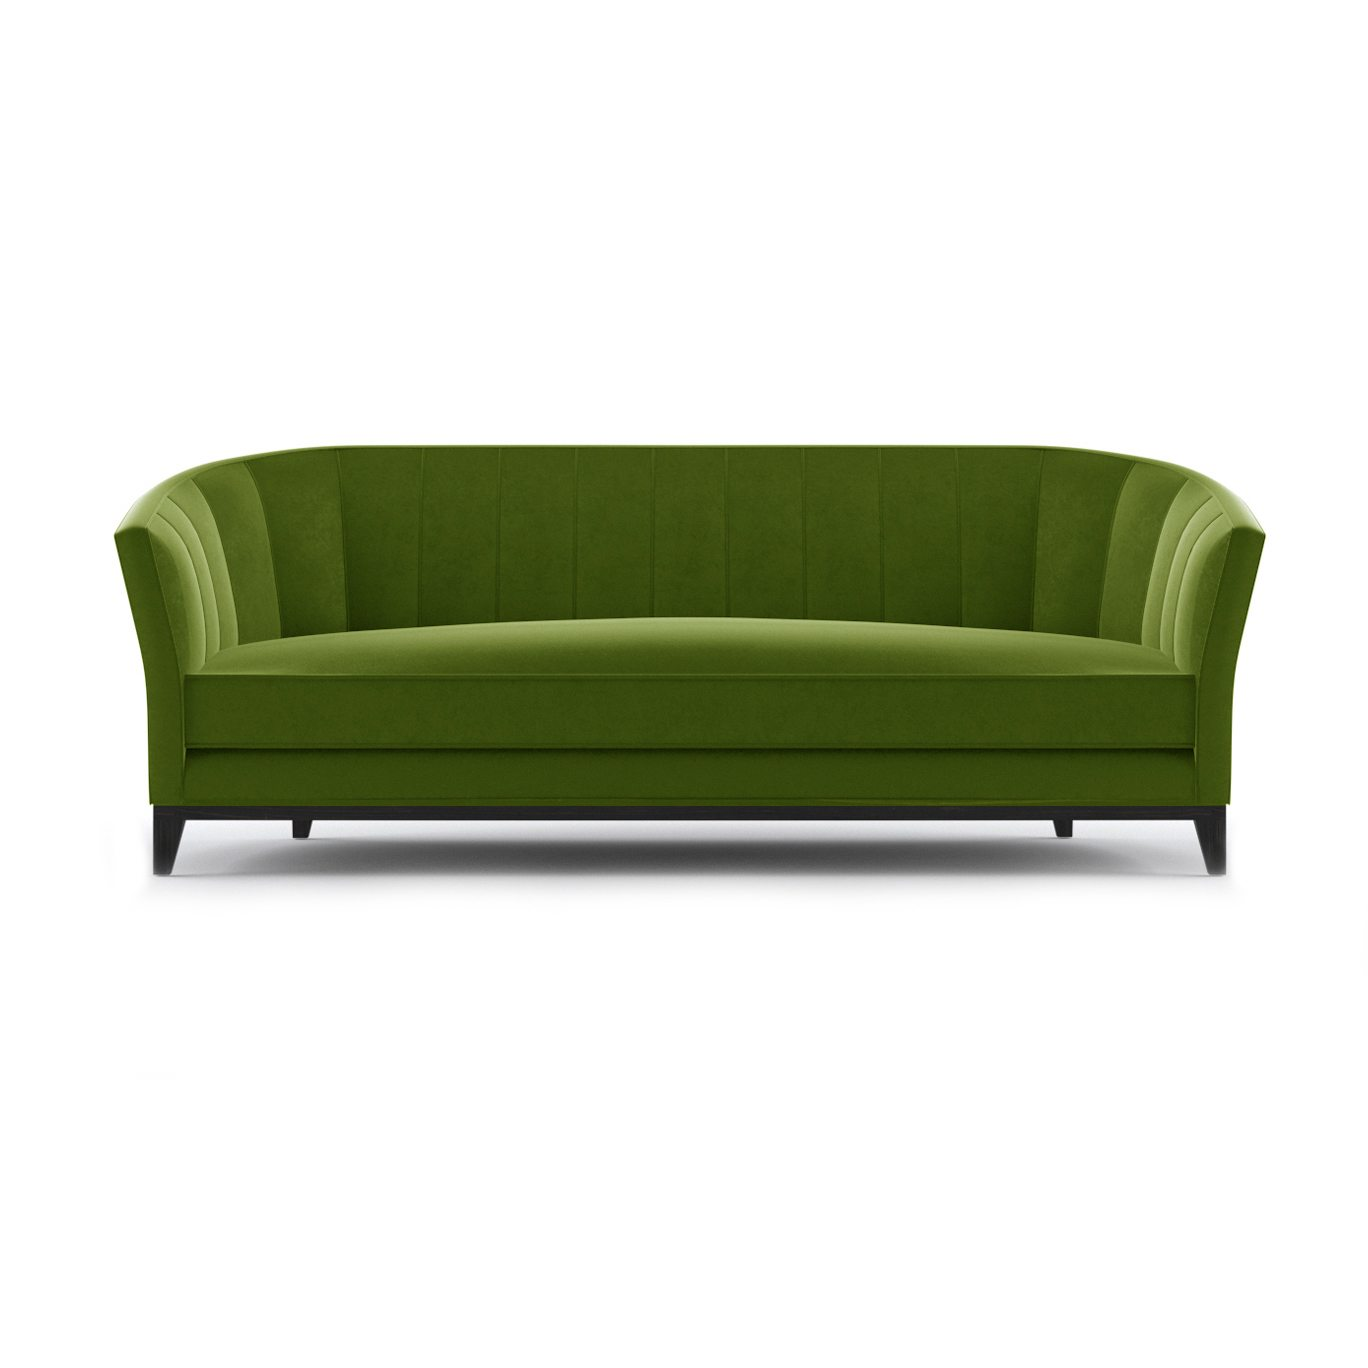 Simone Three and a Half Seater Sofa by Bonham & Bonham